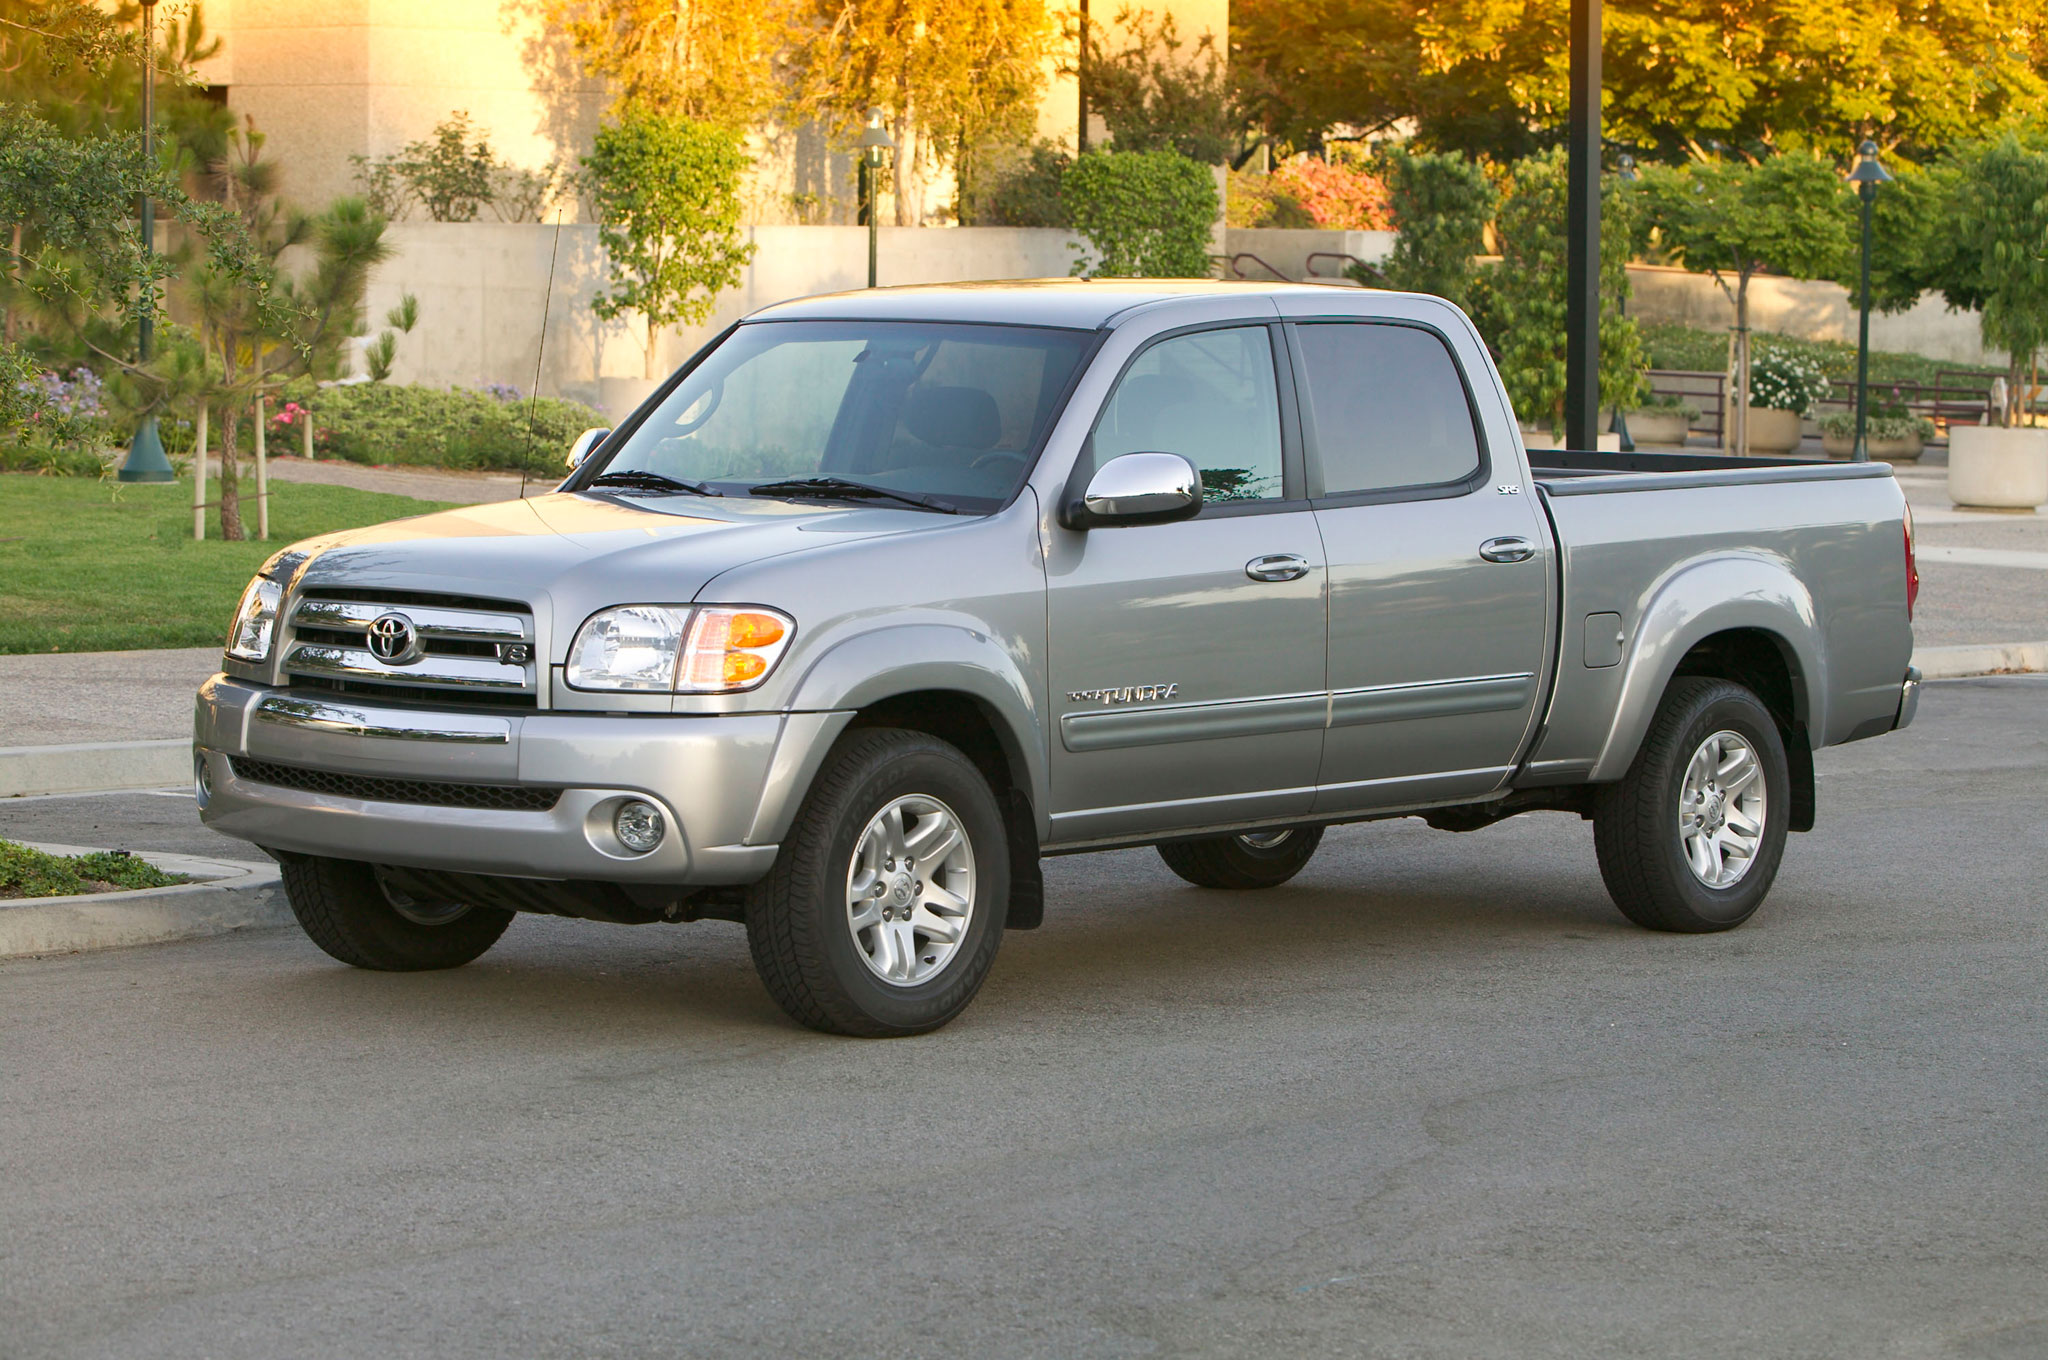 2004 Toyota Tundra Double Cab Left Front Angle